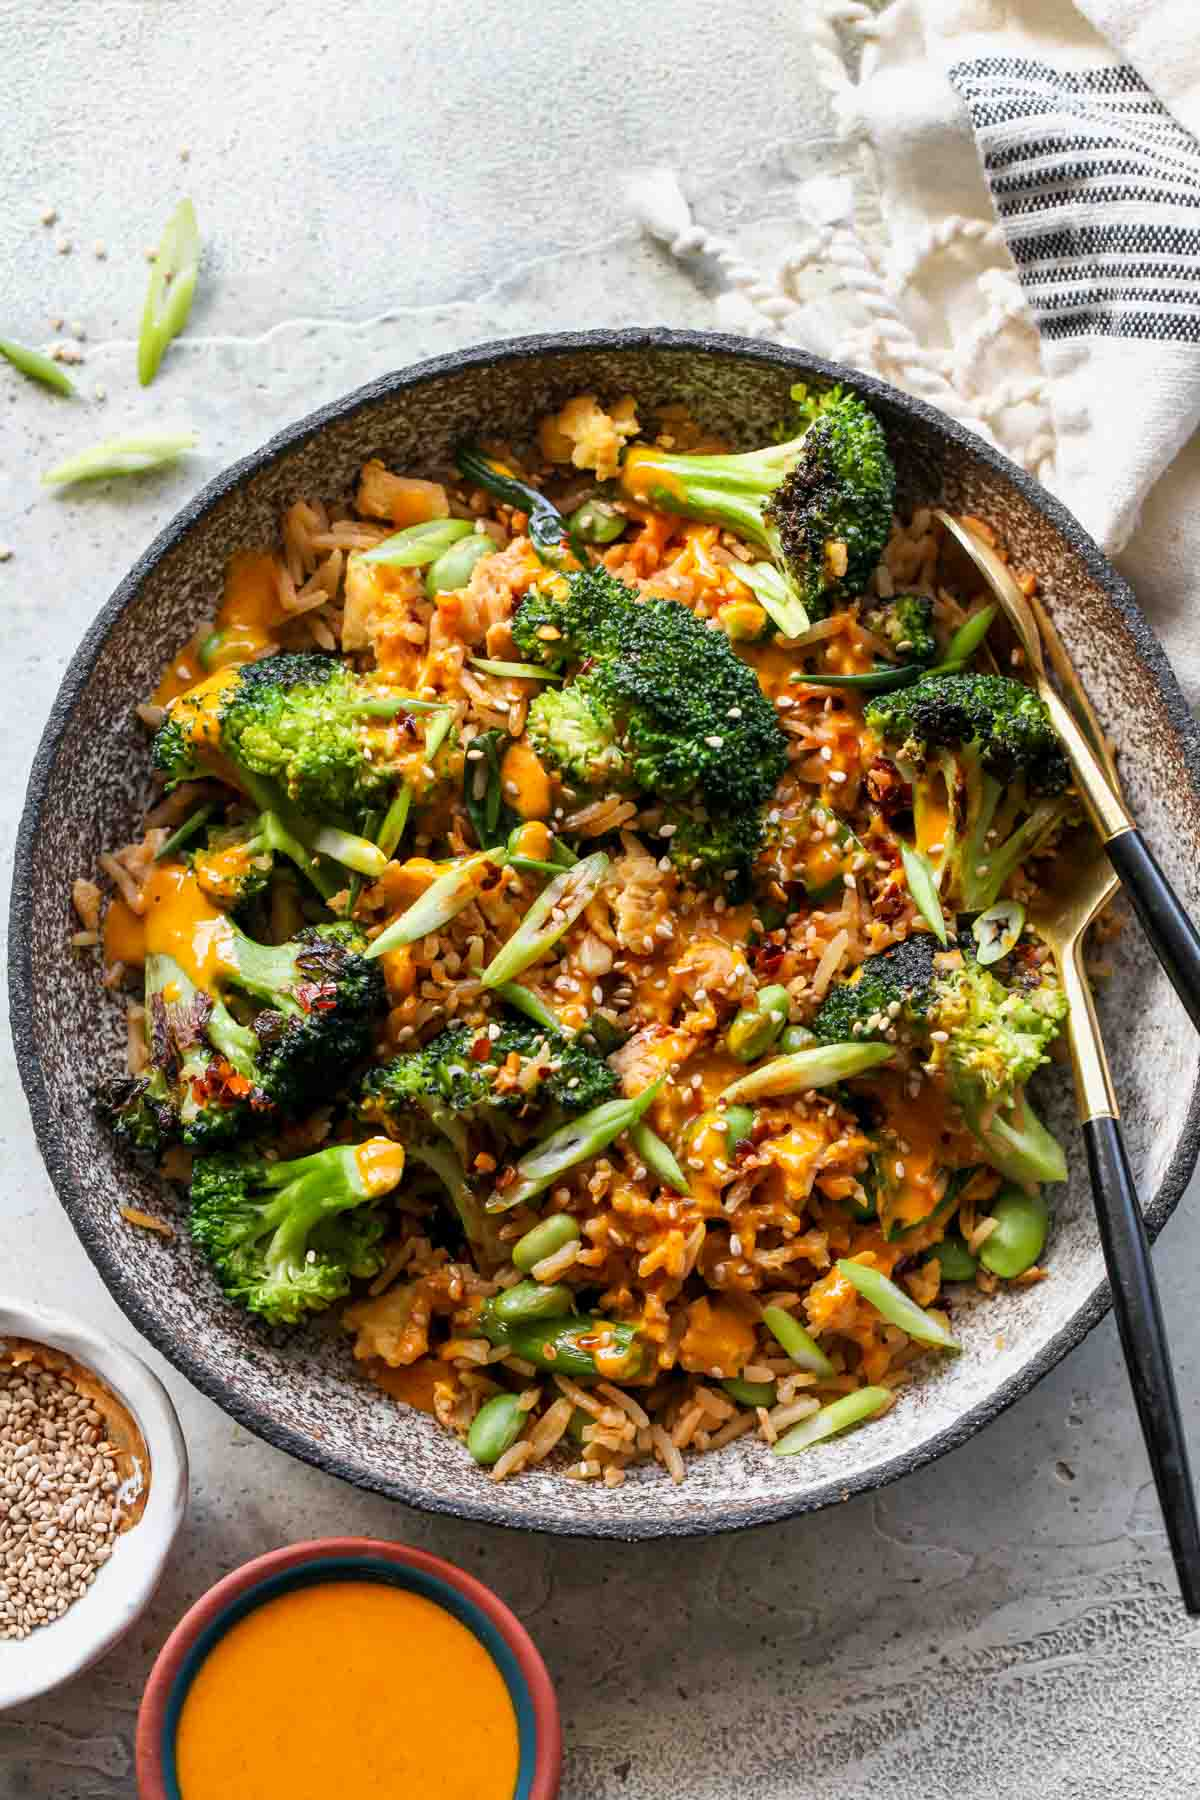 Broccoli fried rice in a grey bowl with sauce drizzled overtop